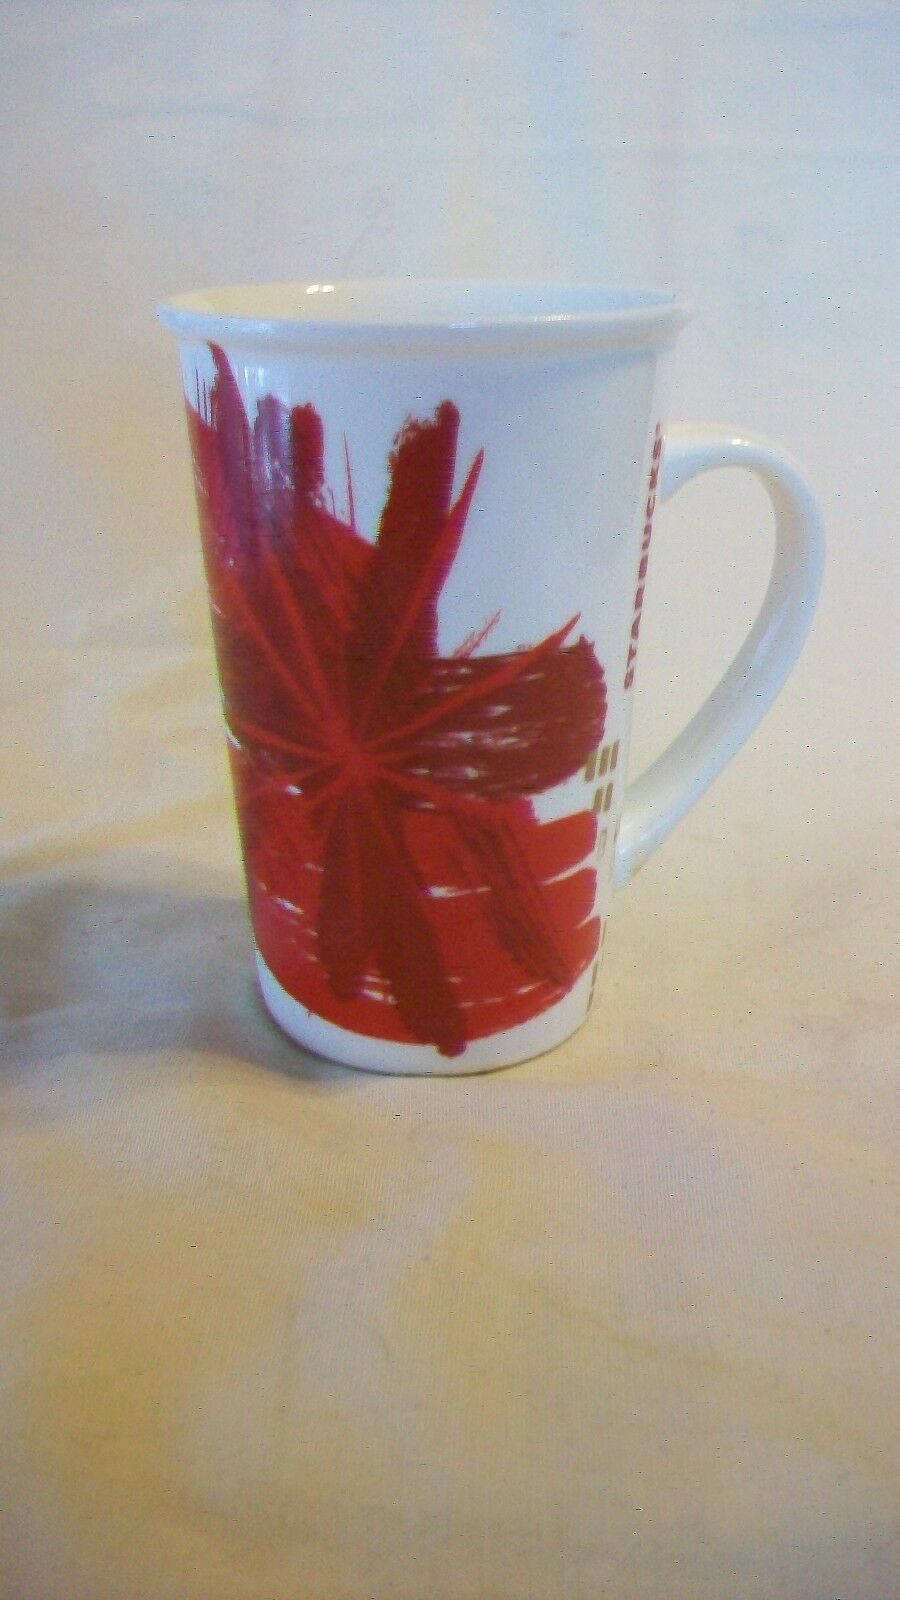 Primary image for Pair of 2014 Starbucks Red Splash Christmas Ceramic Coffee Mugs, holds 12 ounces